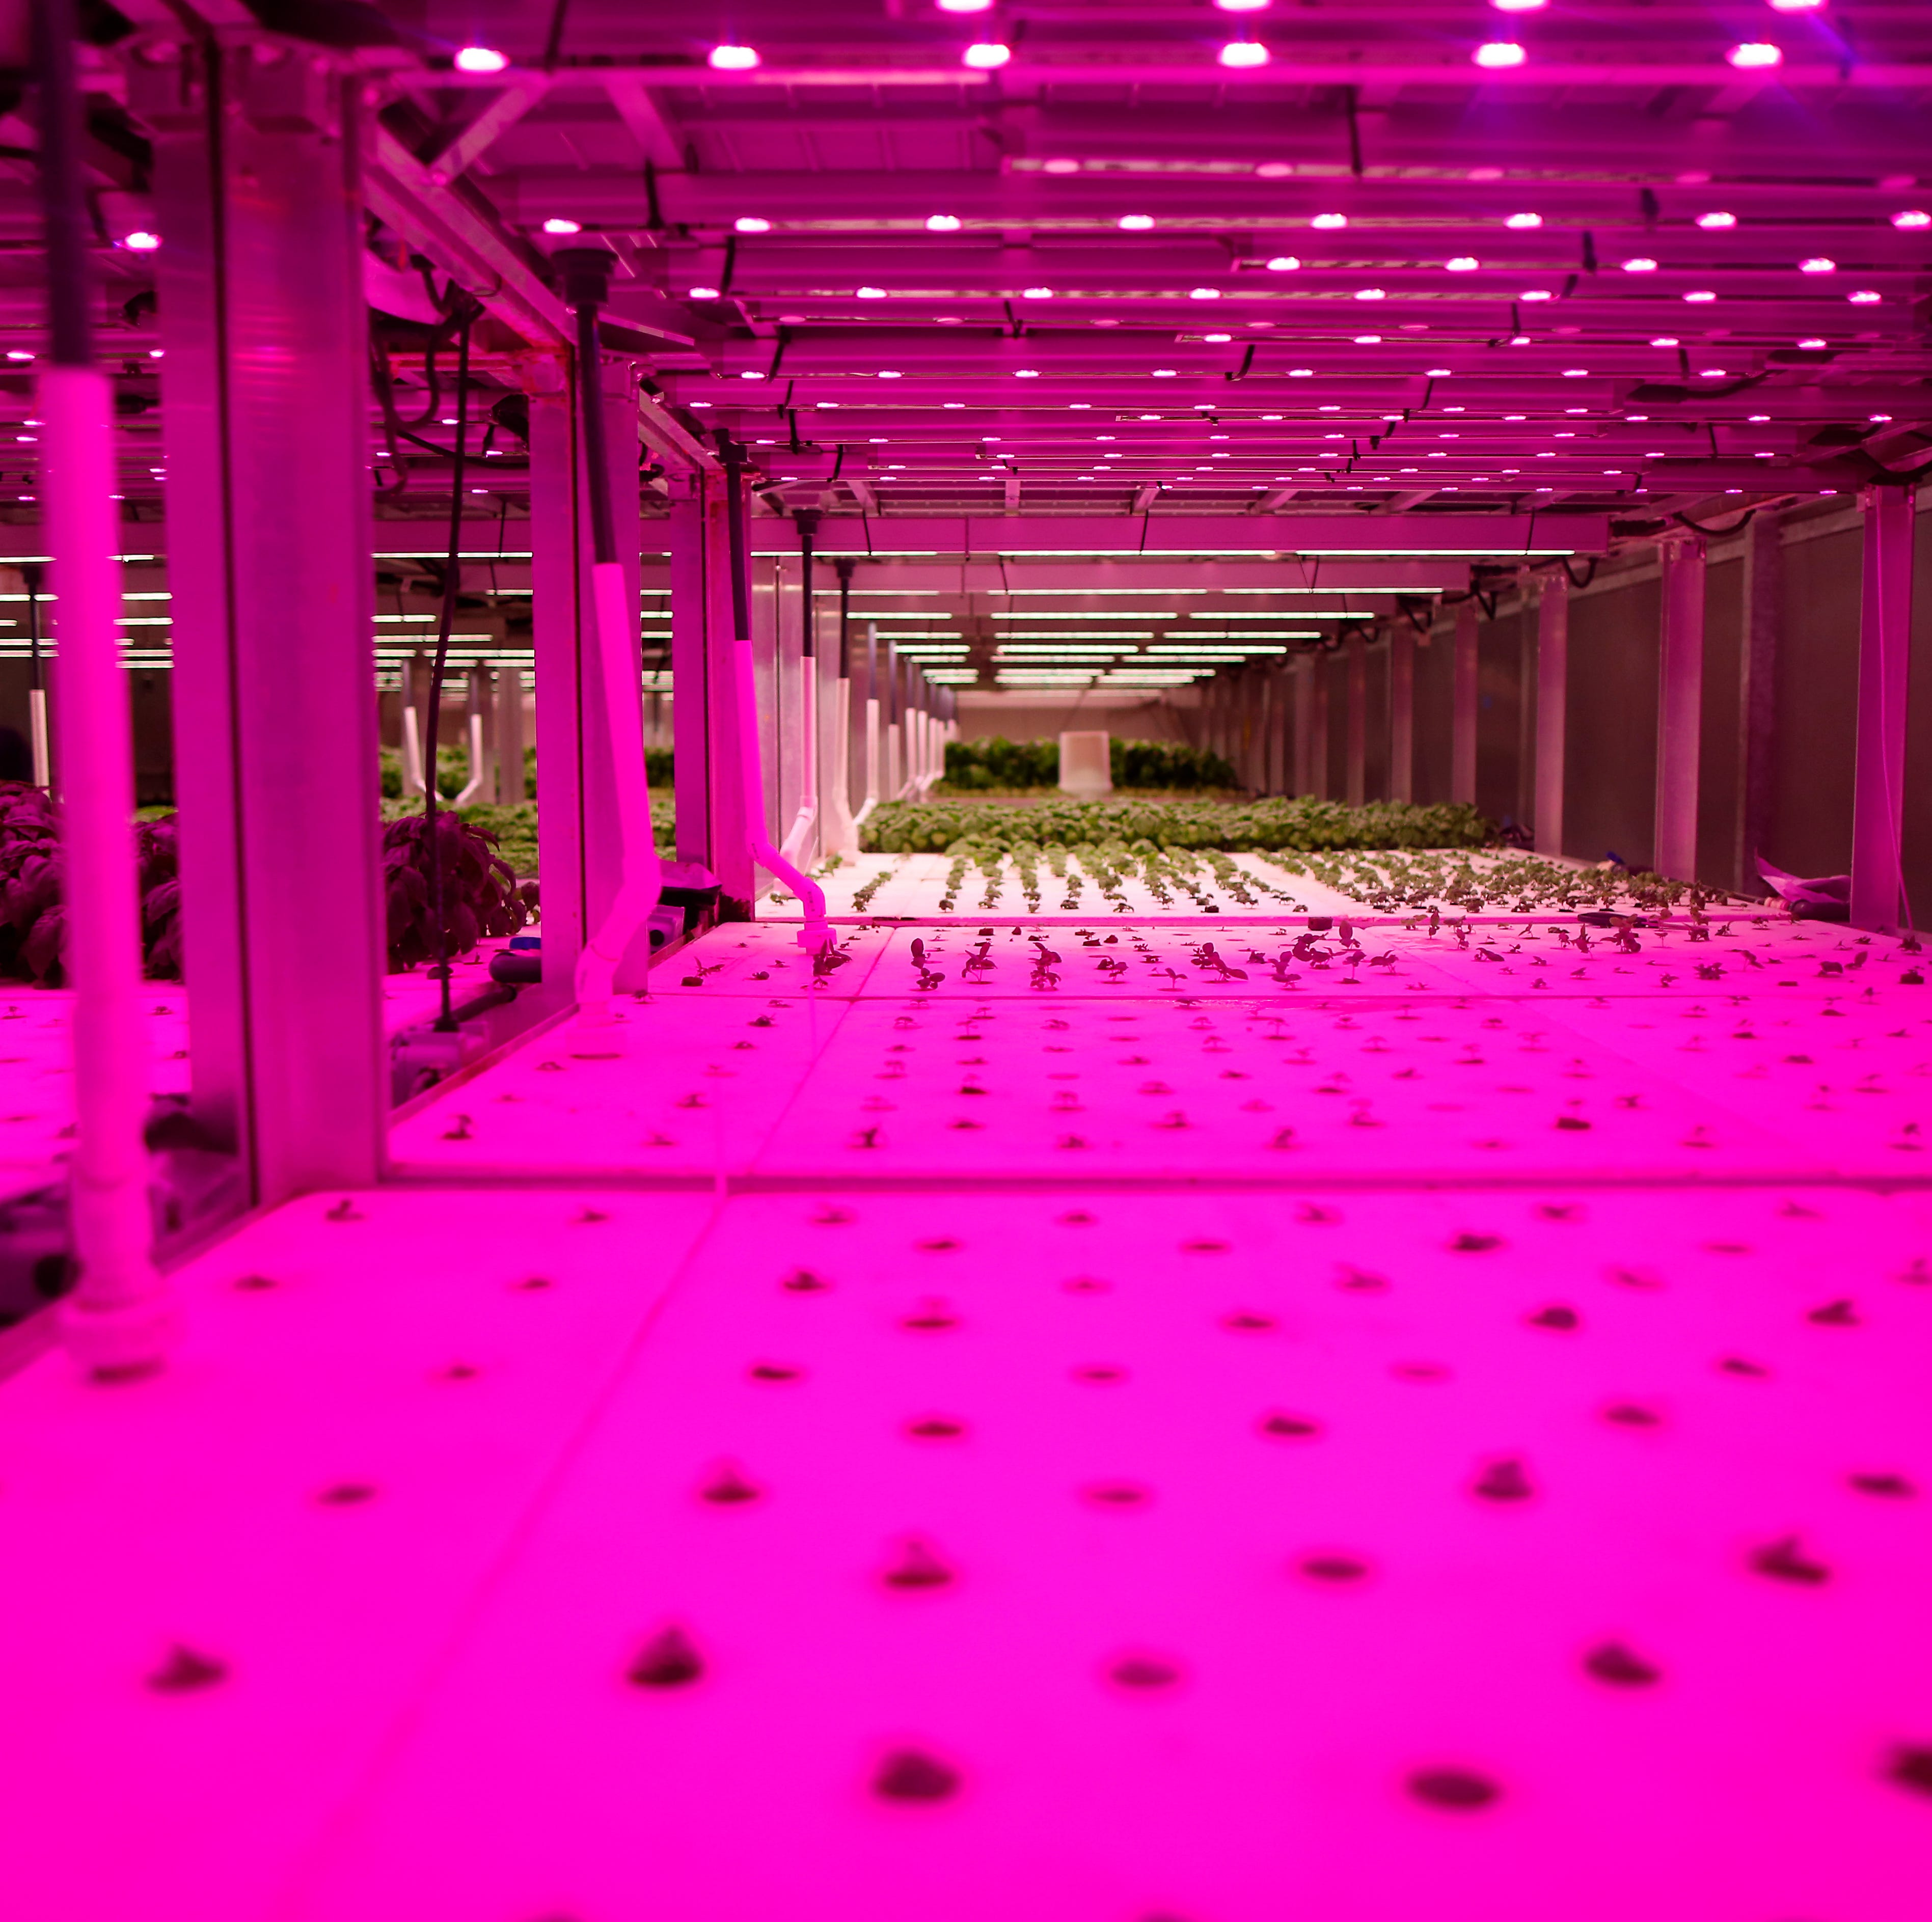 Hydroponic indoor farming is the future of local food